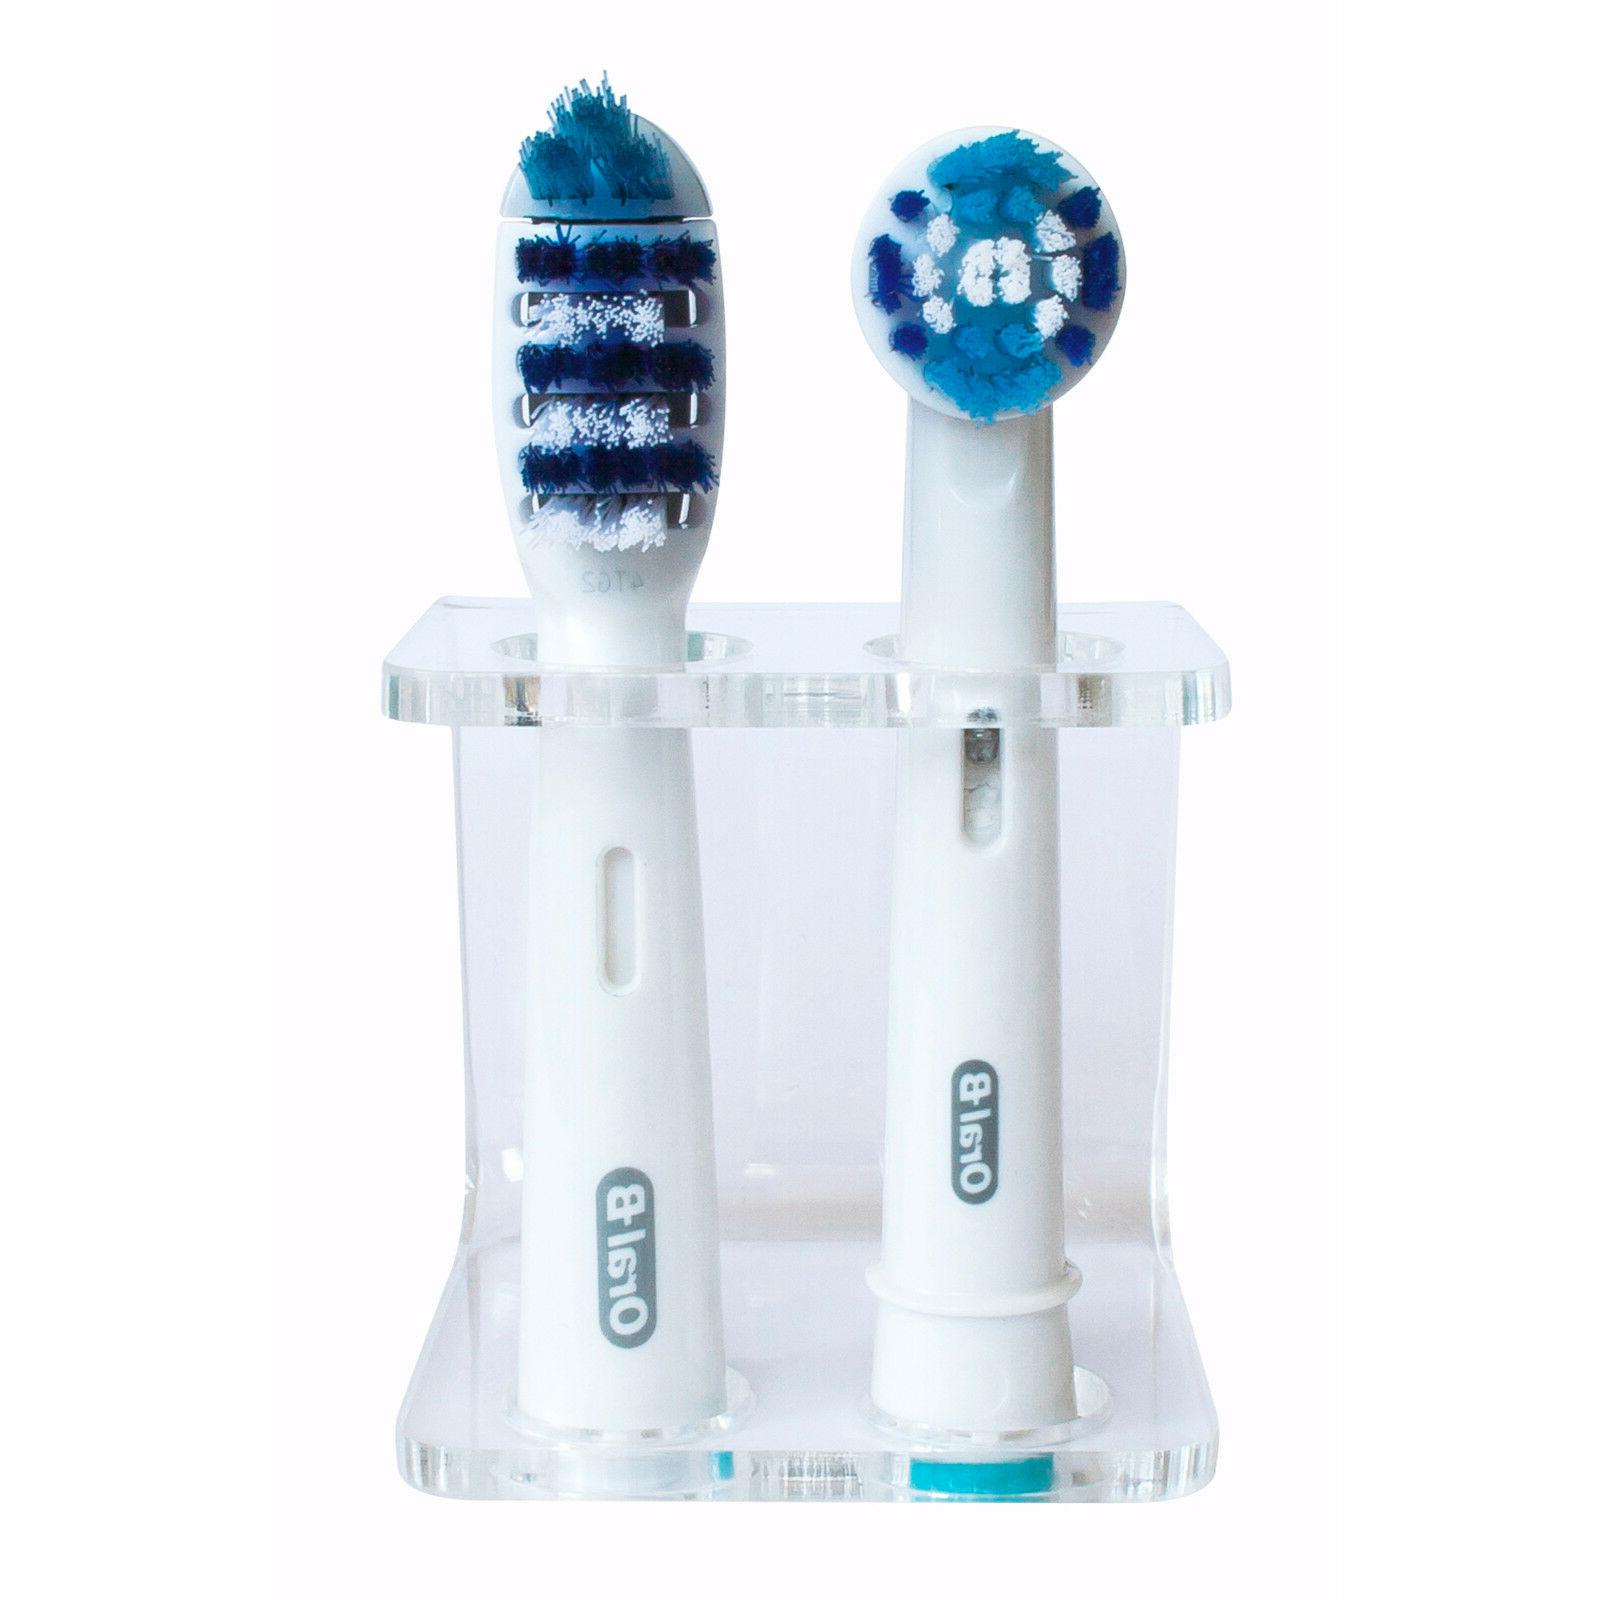 Electric Toothbrush Head Stunning Glass fits B